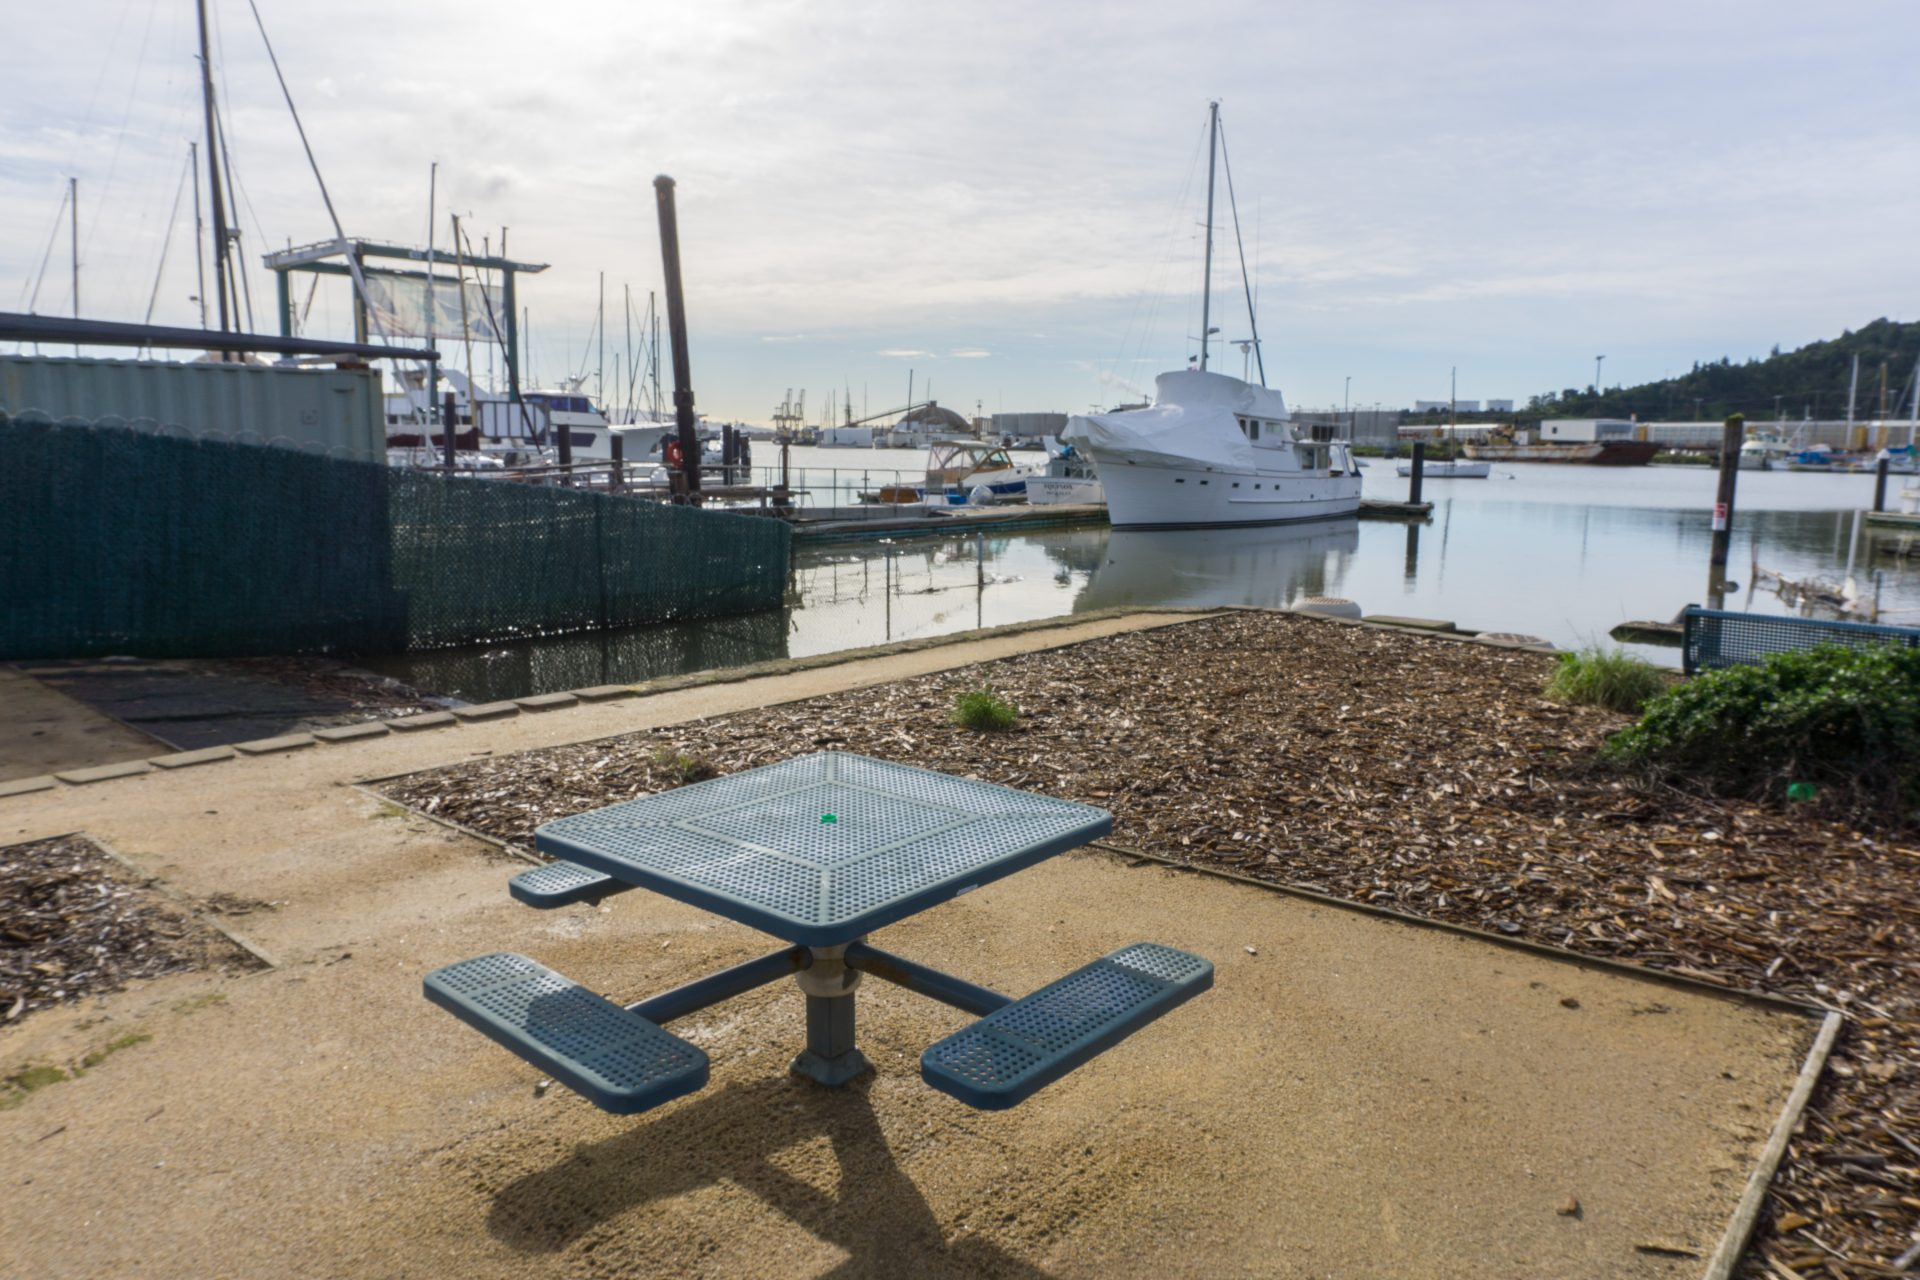 Metal picnic table foreground, boat ramp, and moored sailboats beyond